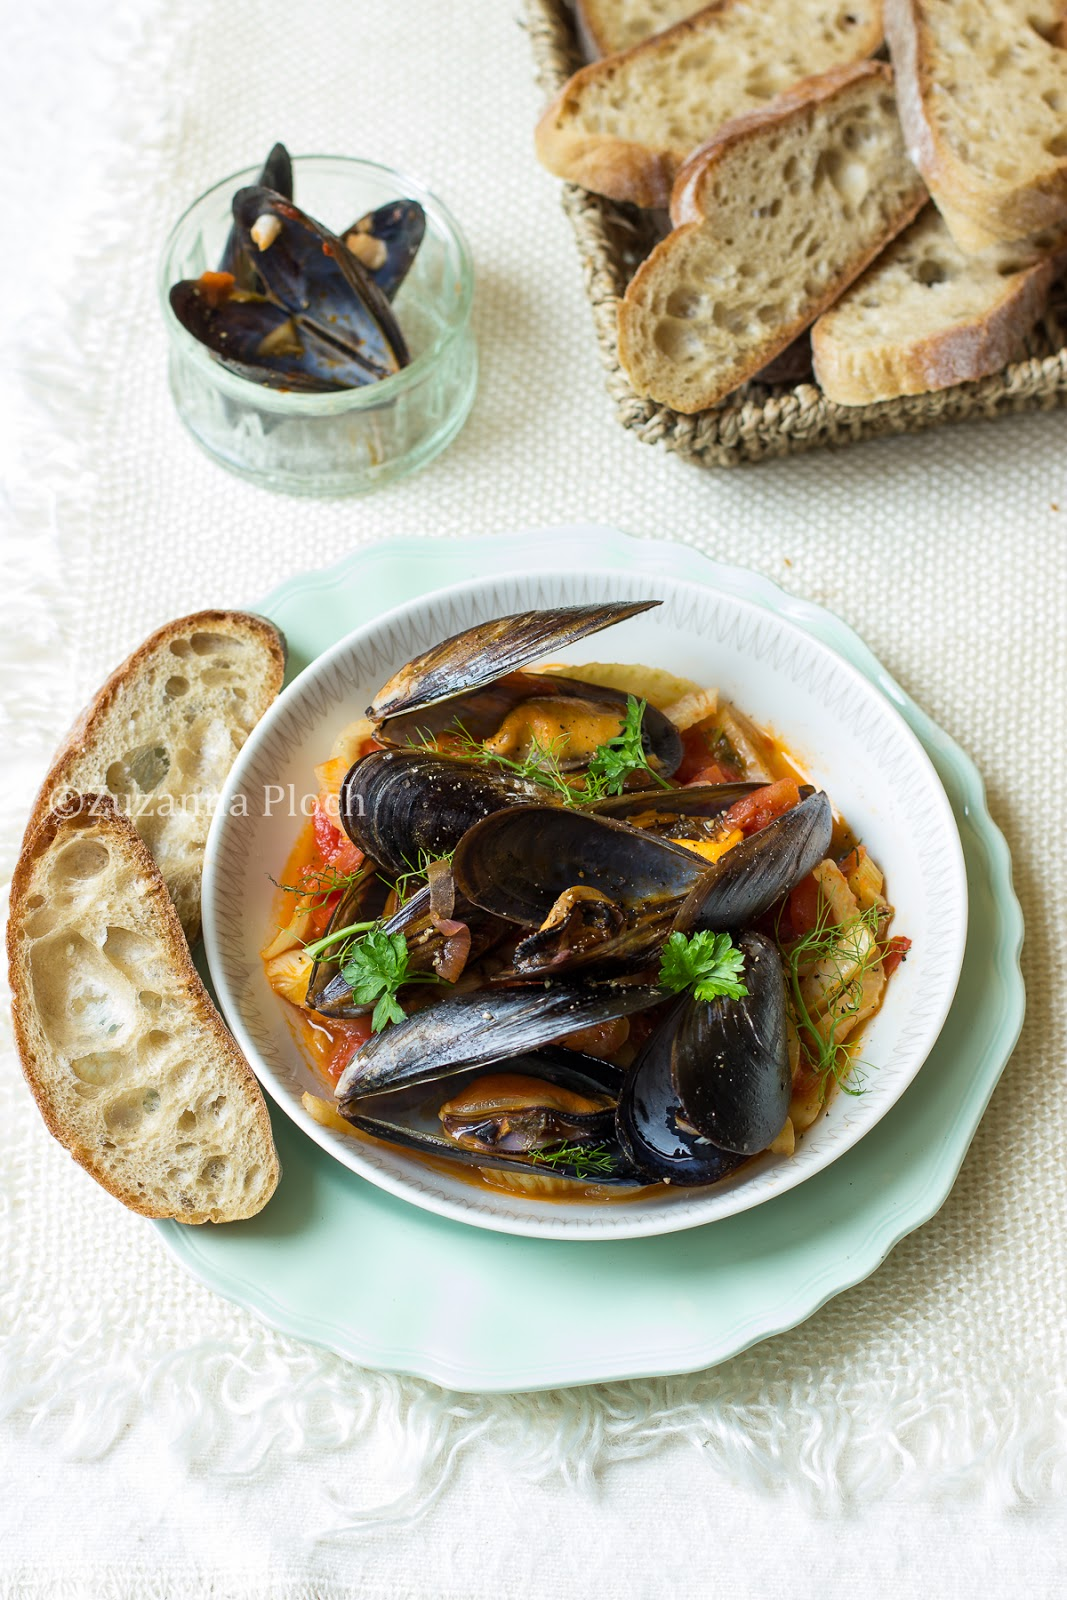 Mussels with fennel in tomato sauce